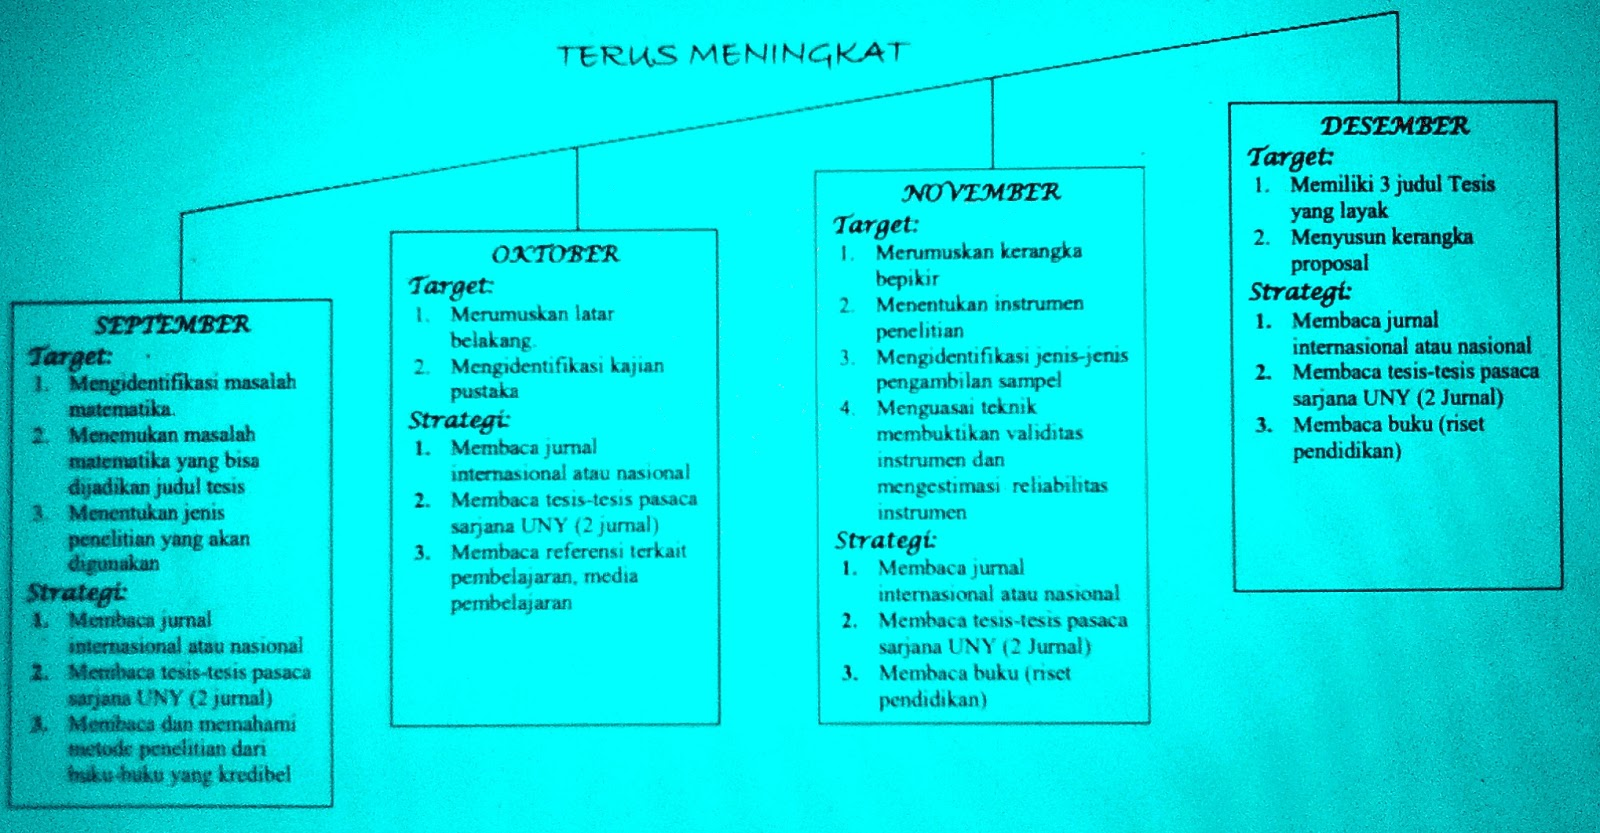 Metodologi penelitian review jurnal